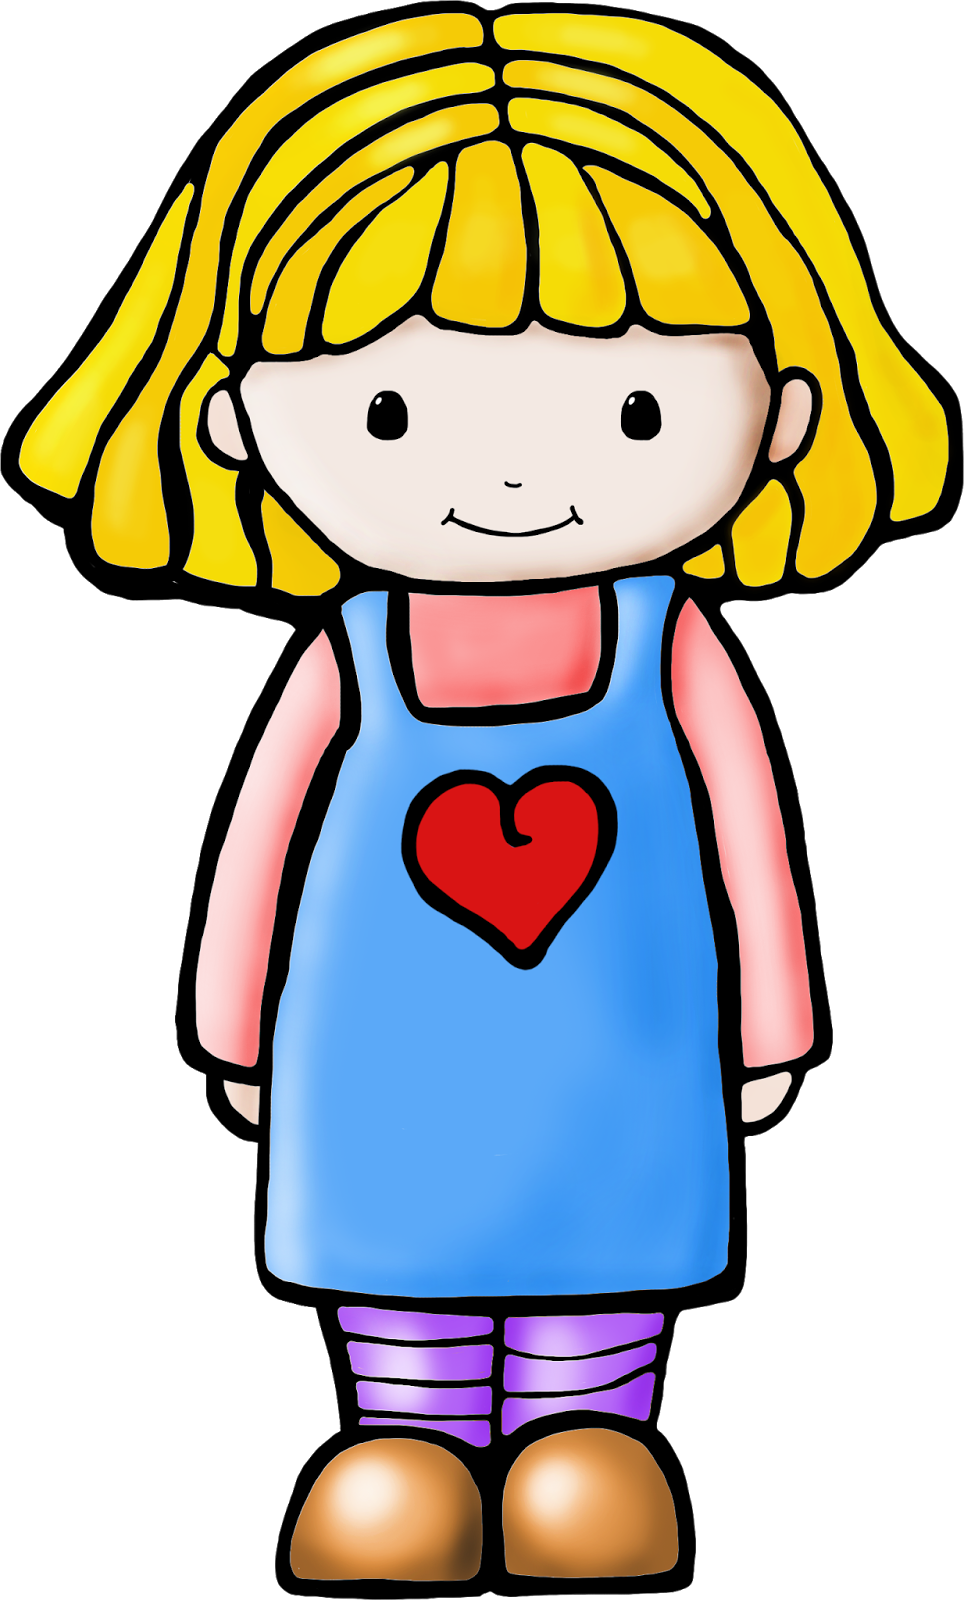 girlclipartcliparti1_girlclipart_09.jpg